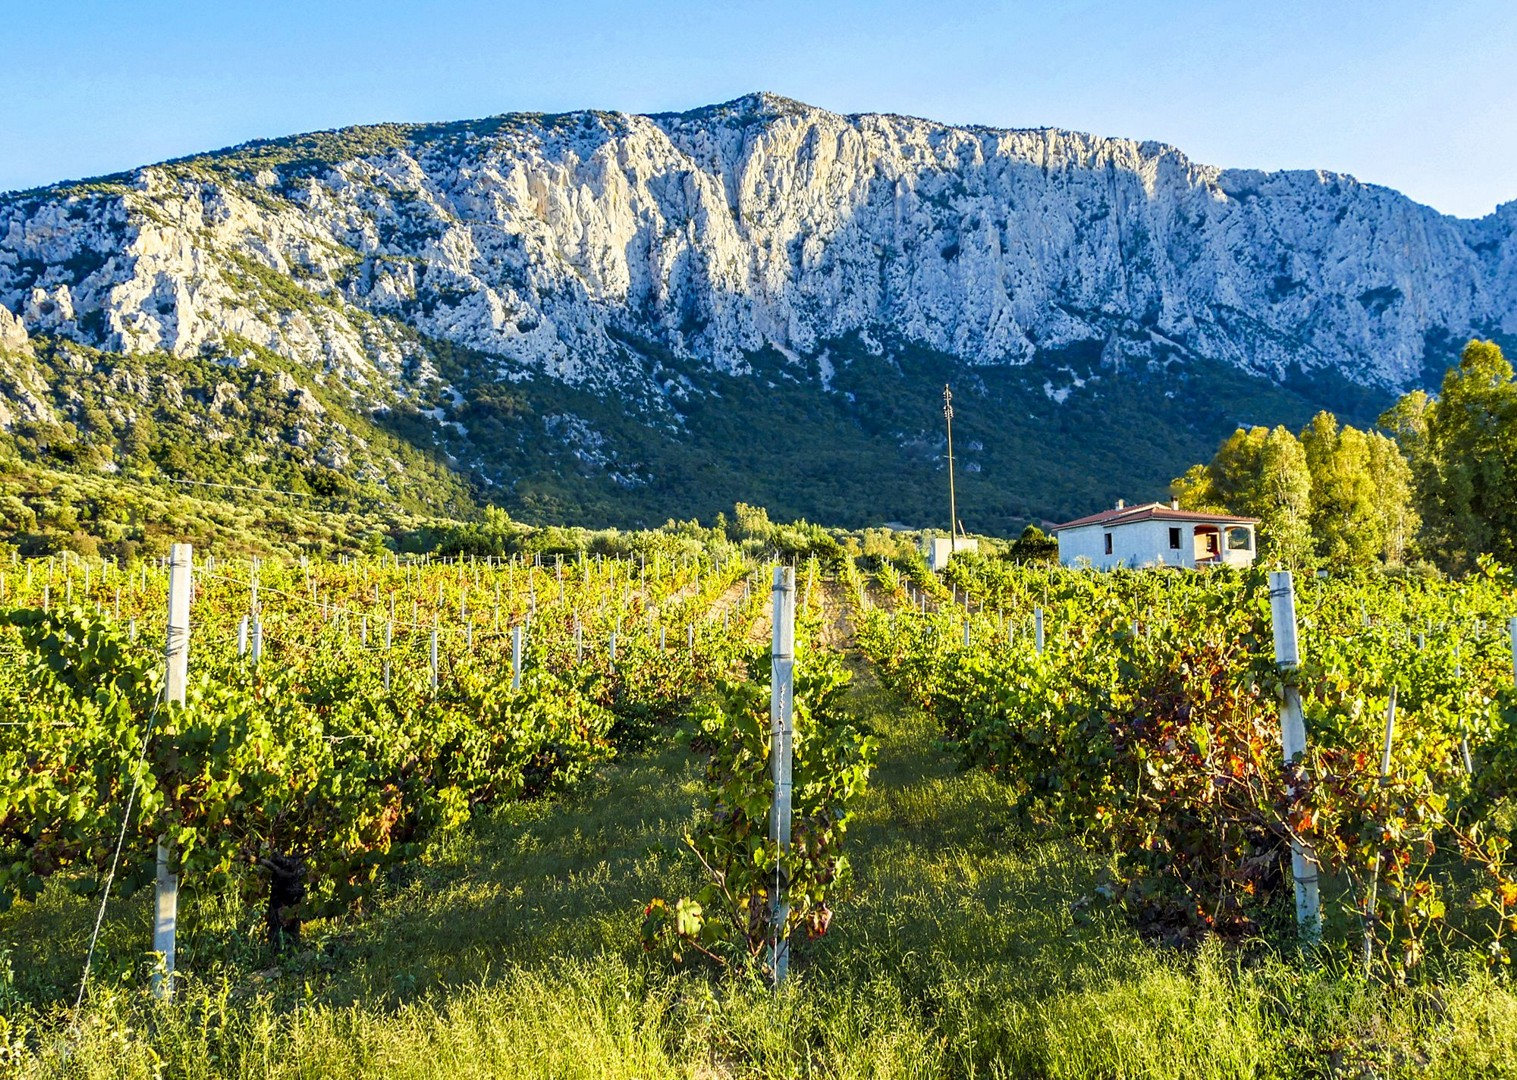 su-gologne-self-guided-leisure-cycling-holiday-skedaddle-vineyard-mountains.jpg - Italy - Sardinia - Island Flavours - Self-Guided Leisure Cycling Holiday - Leisure Cycling